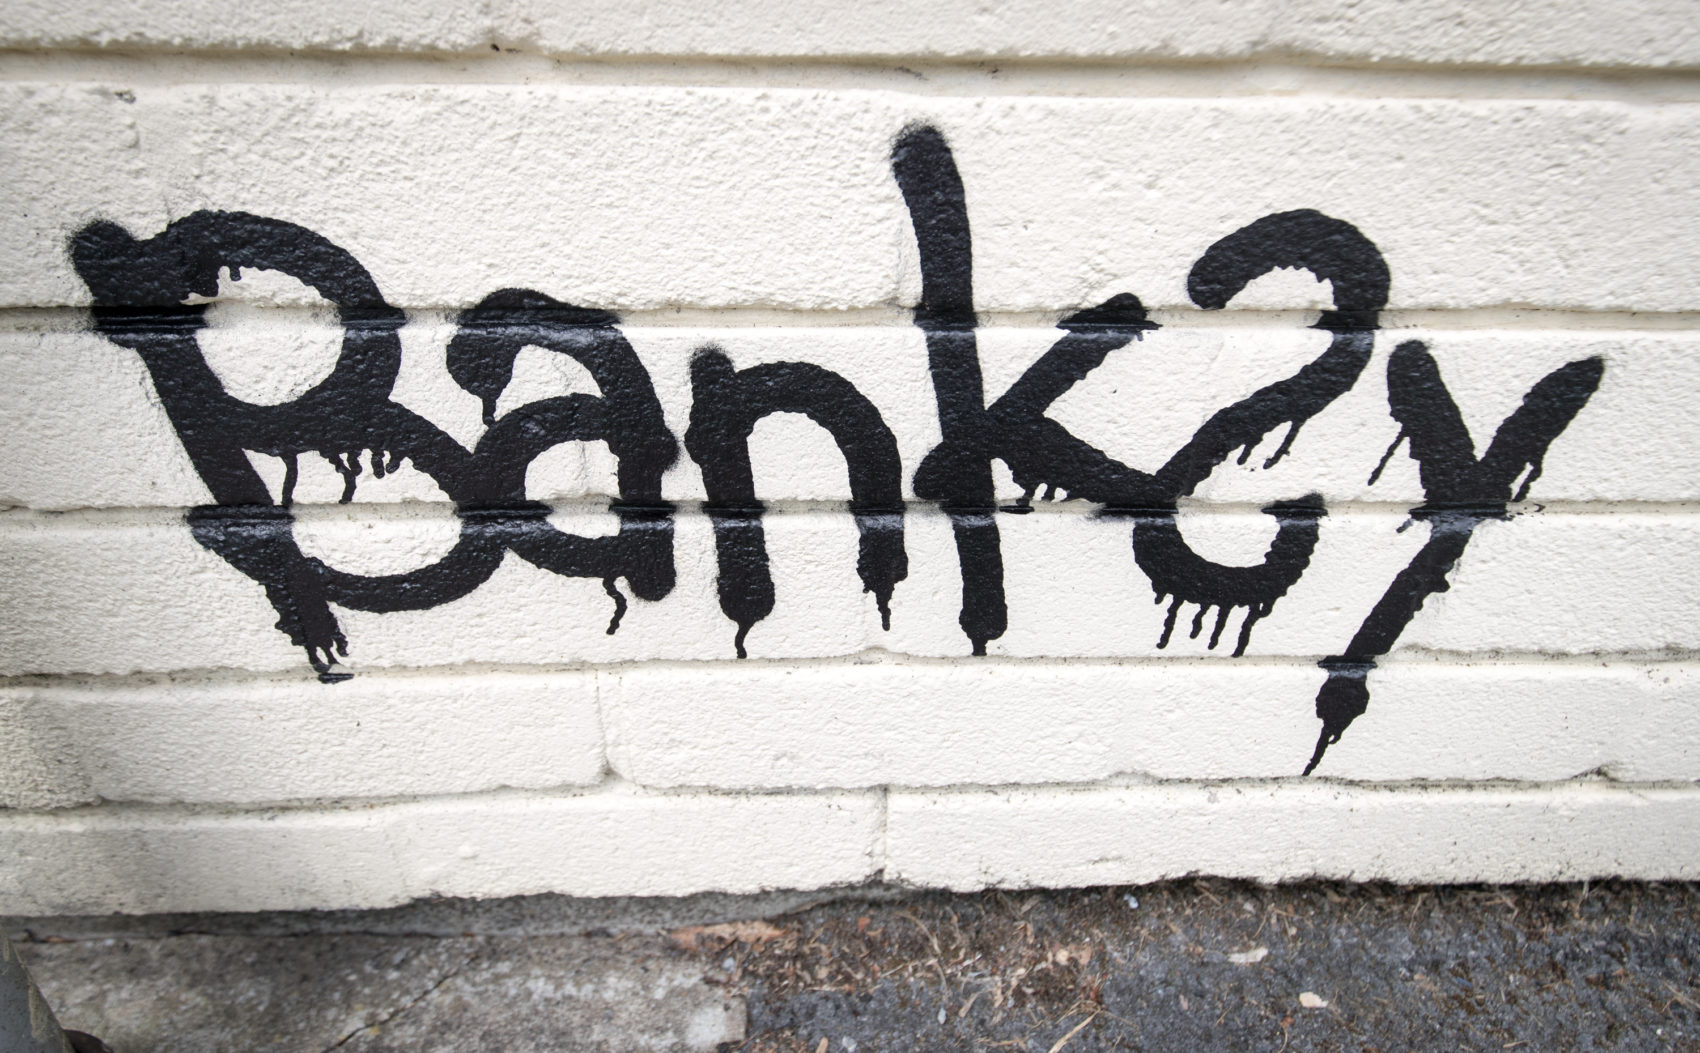 The name Banksy is left as part of a mural painted on the side of one of the classrooms at Bridge Farm Primary in Bristol, England on June 7, 2016. (Matt Cardy/Getty Images)